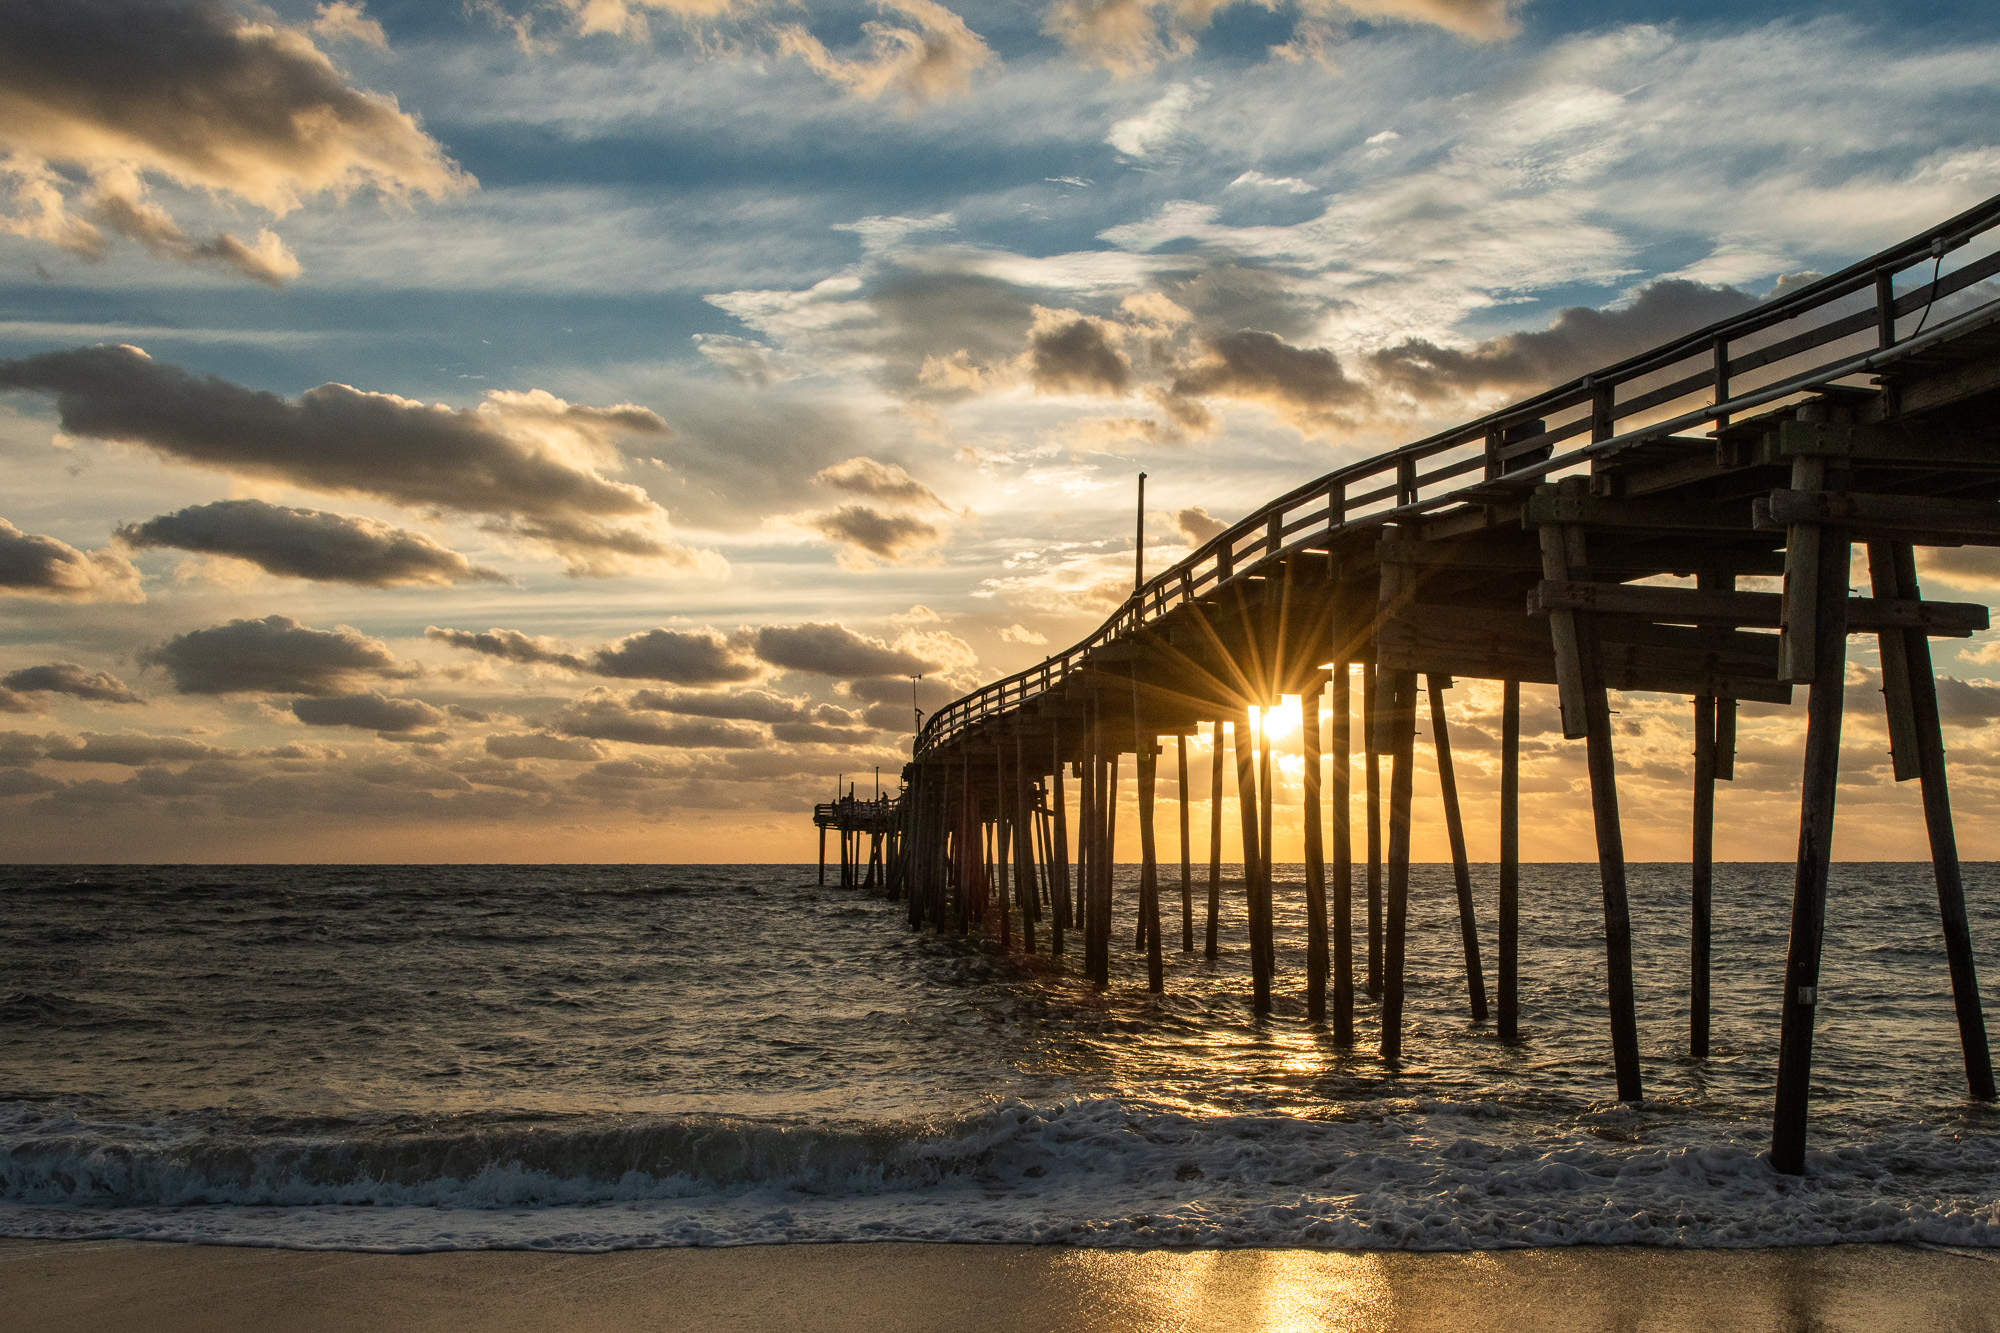 outer-banks-north-carolina-photography-laura-gampfer